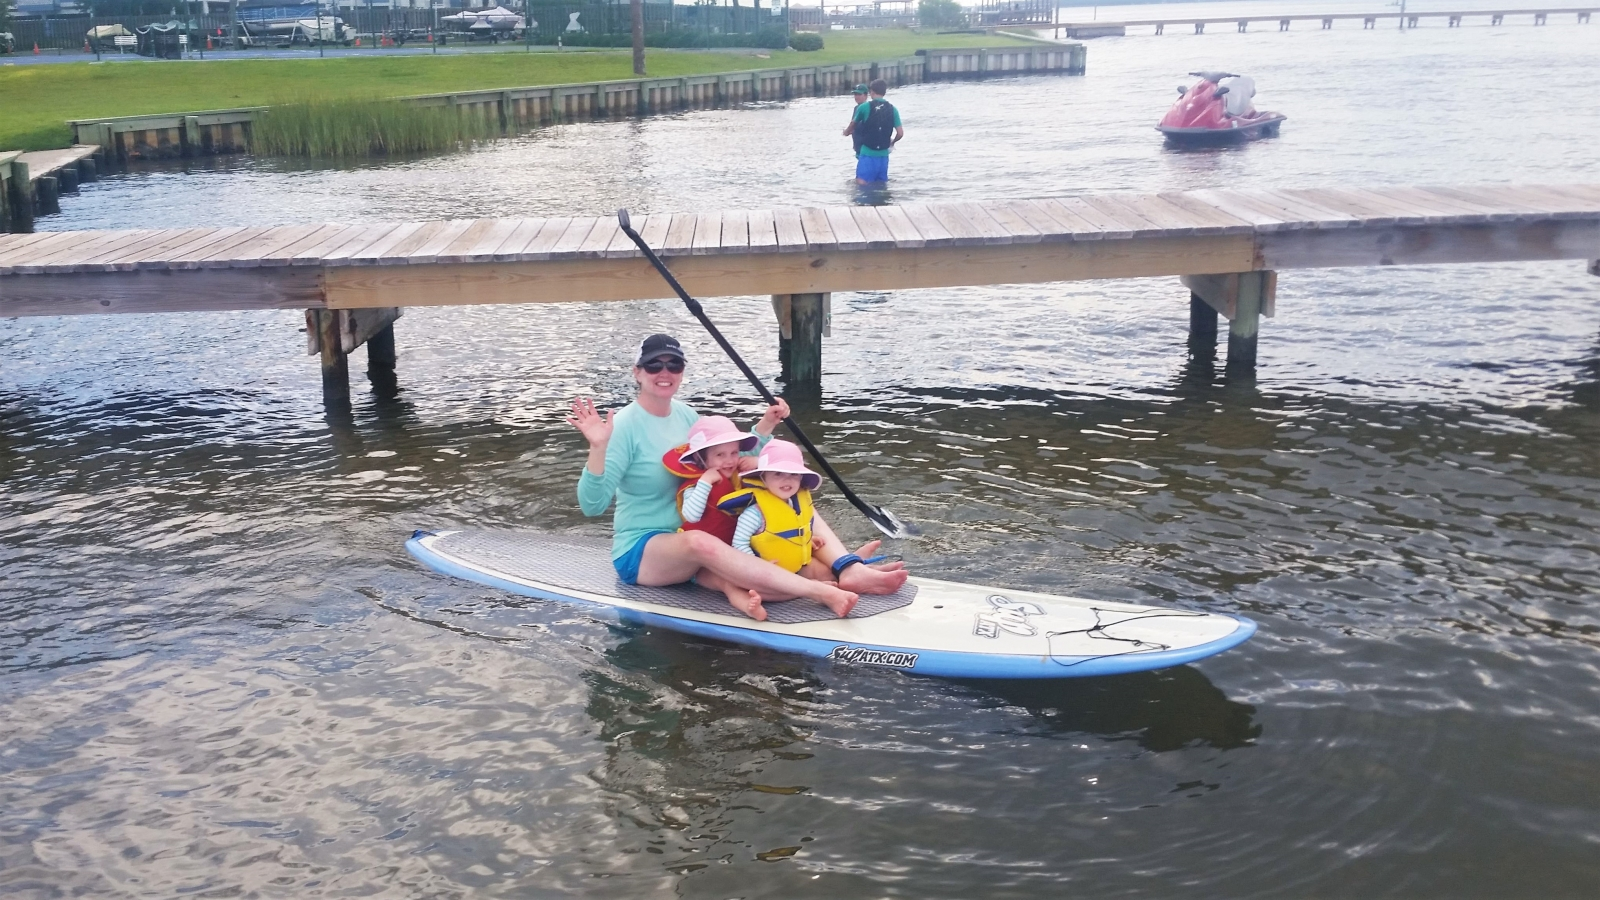 A woman and two children sitting on a paddleboard with a dock behind them.